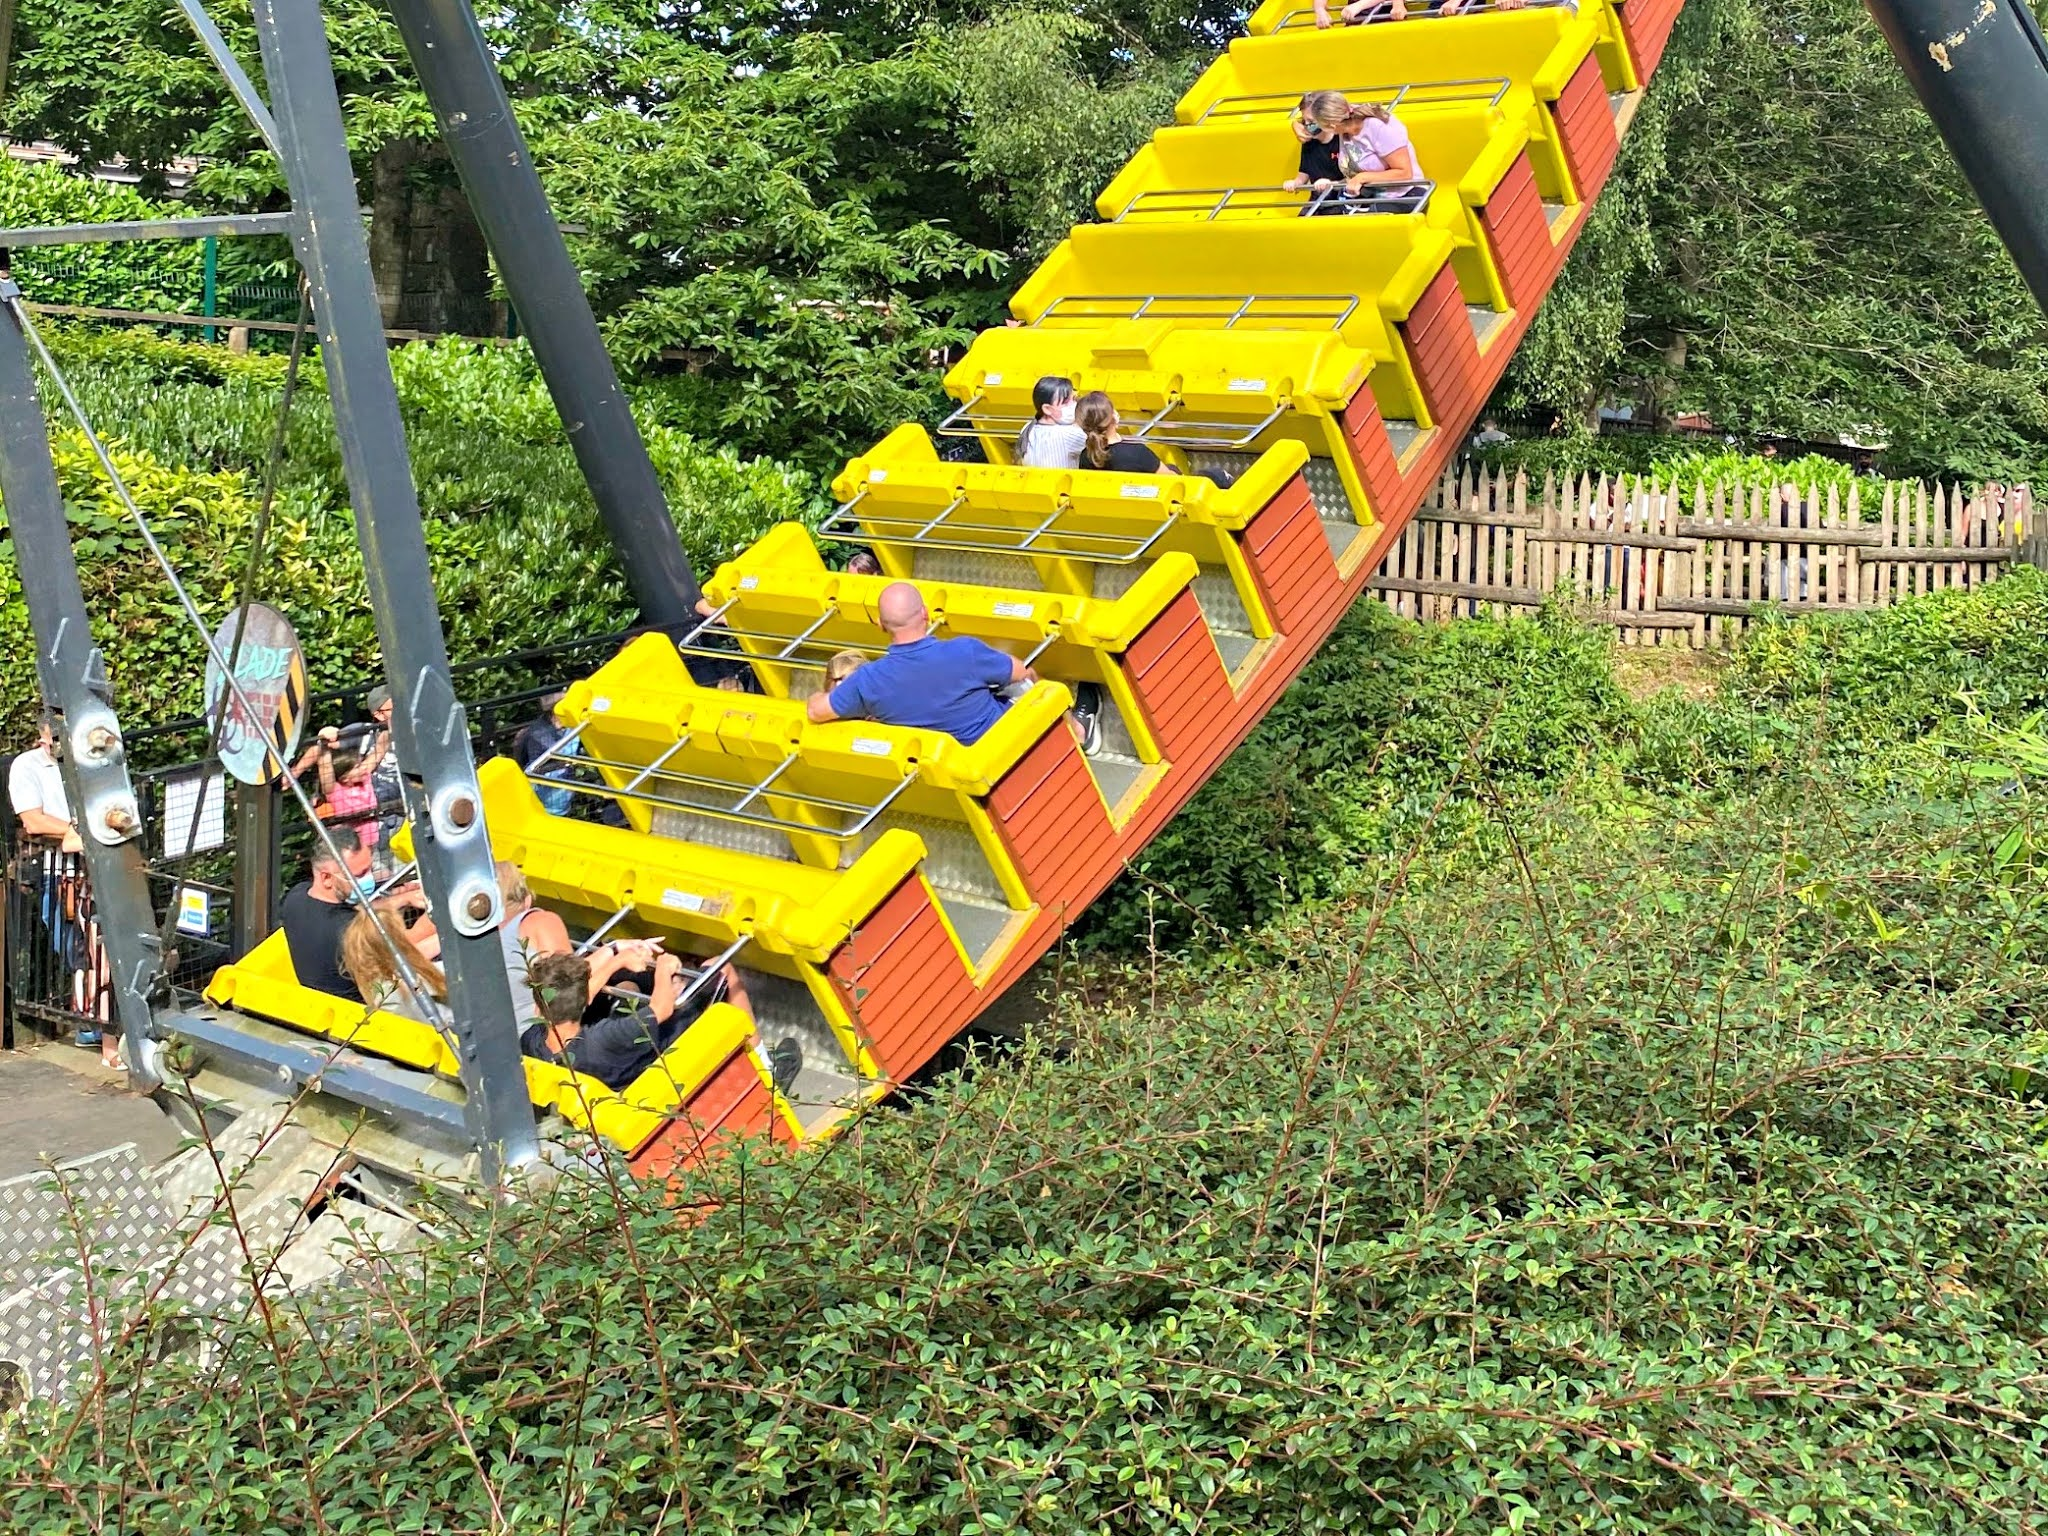 The Blade ride at Alton Towers